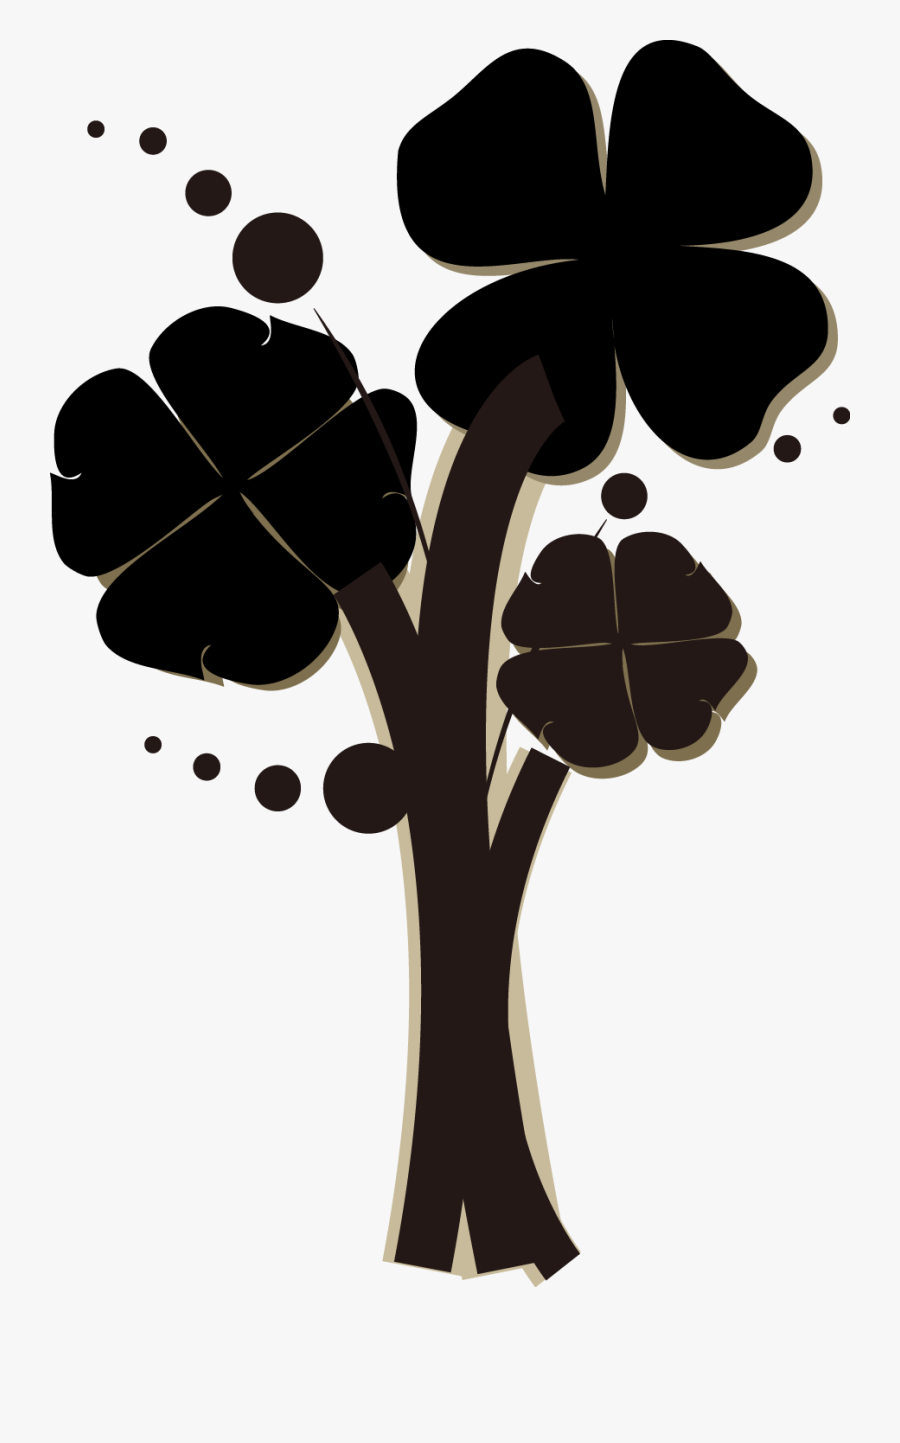 Clover Painted Cartoon Png Download - Four-leaf Clover, Transparent Clipart